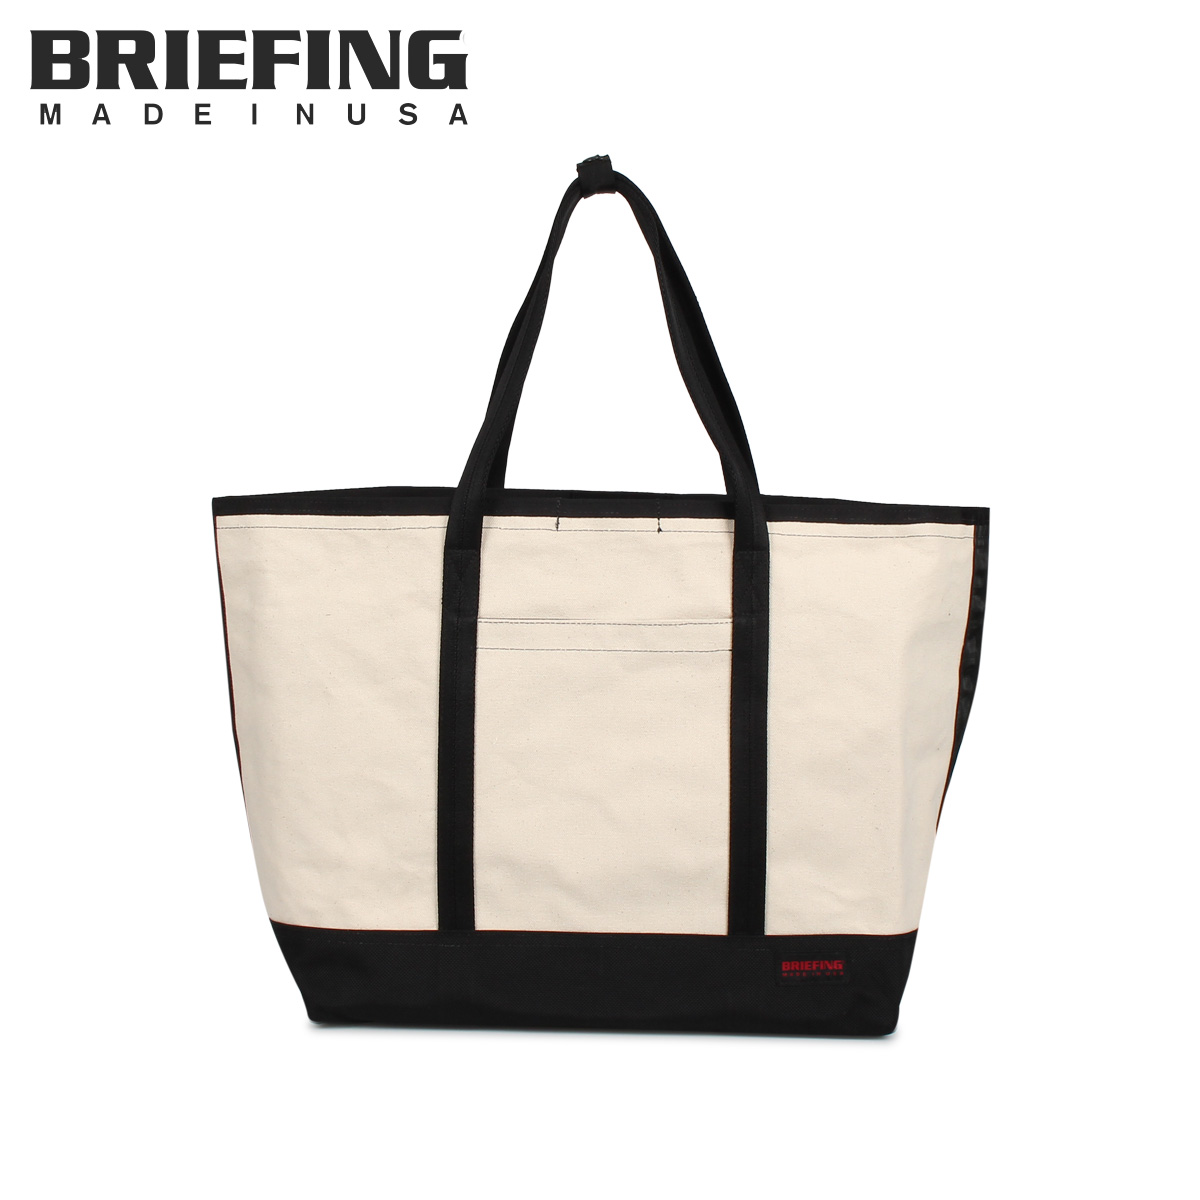 BRIEFING COMBI TOTE L ブリーフィング コンビ トート バッグ トートバッグ メンズ ブラック 黒 181304 [10/30 新入荷]